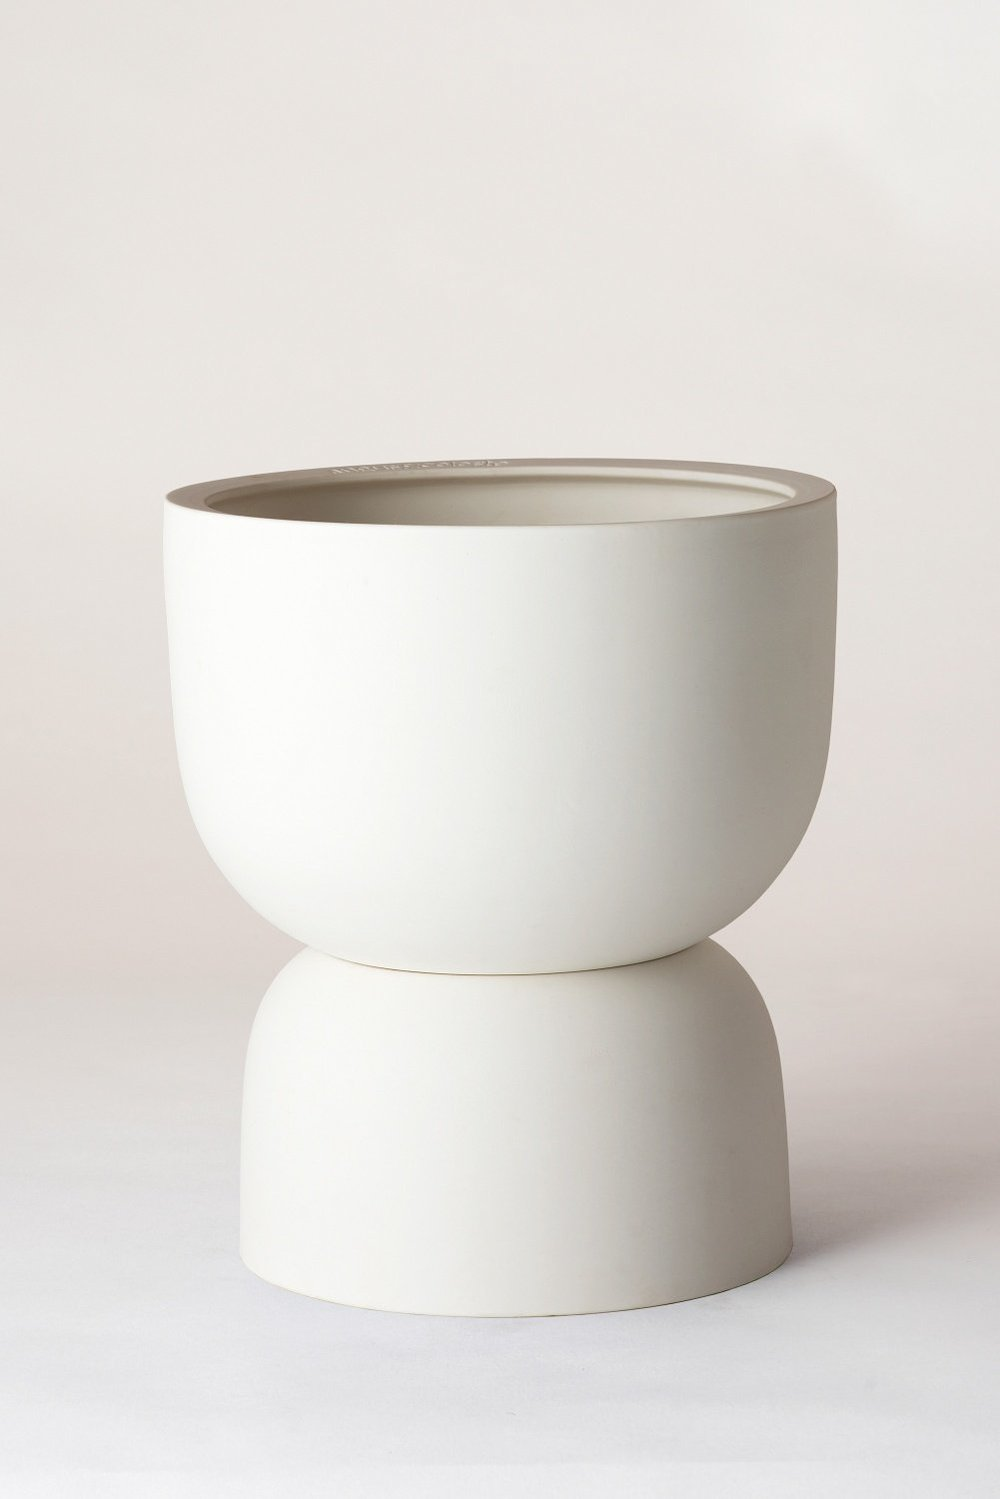 raw_earth_plant_stand_pot_-_raw_earth_plant_stand_pot_chalk_white.jpg